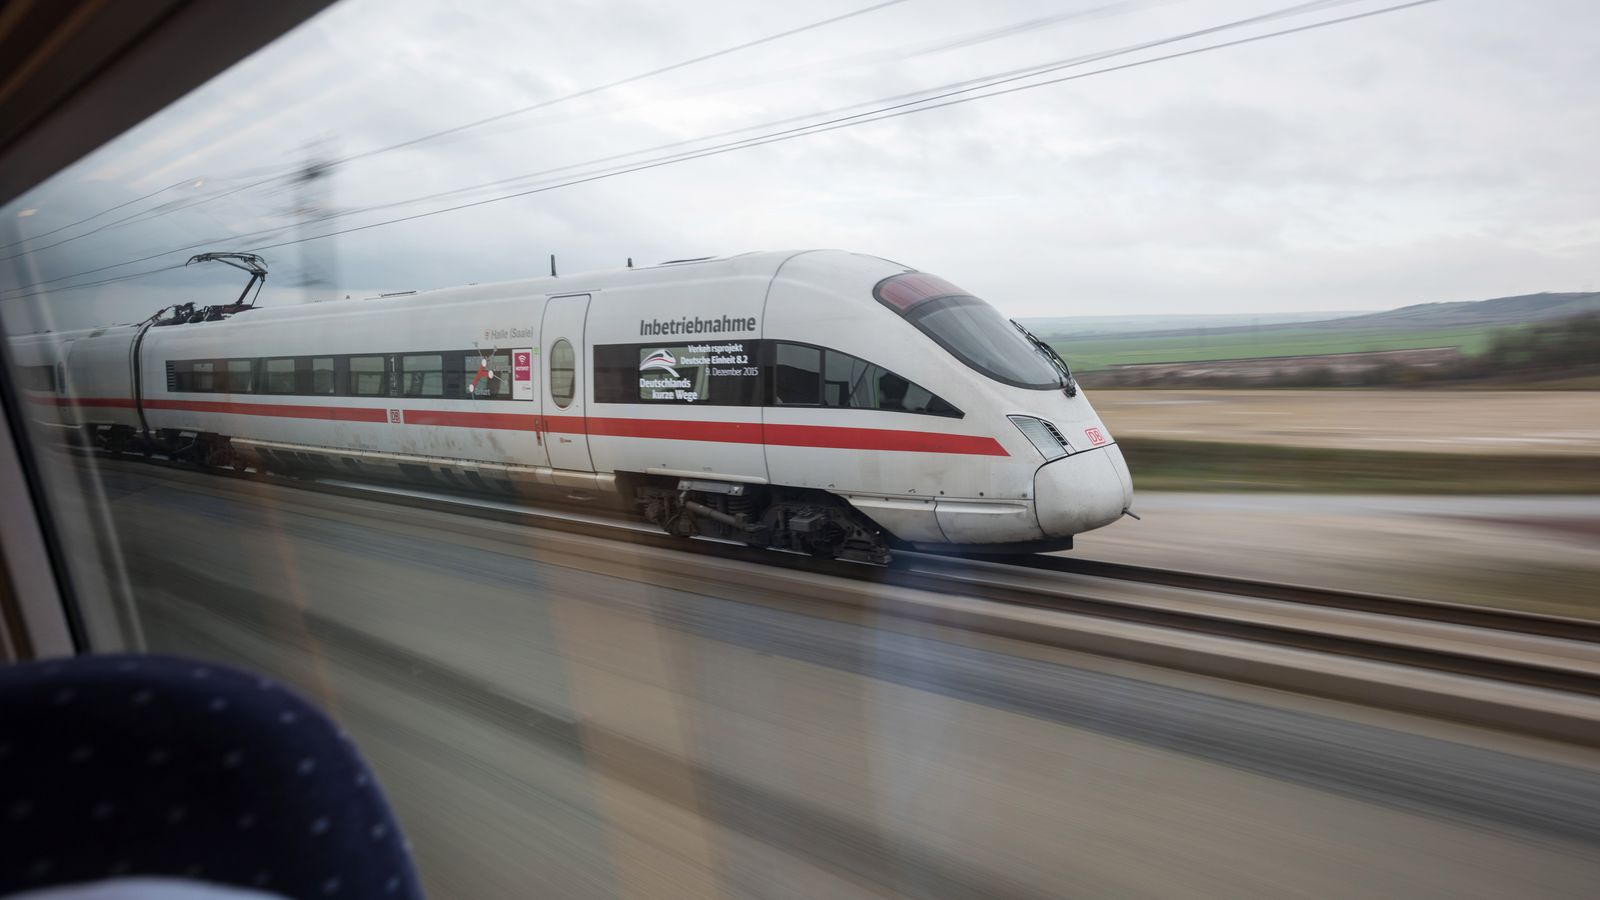 Germany Will Add Self-Driving Vehicles to Its Railroad Network